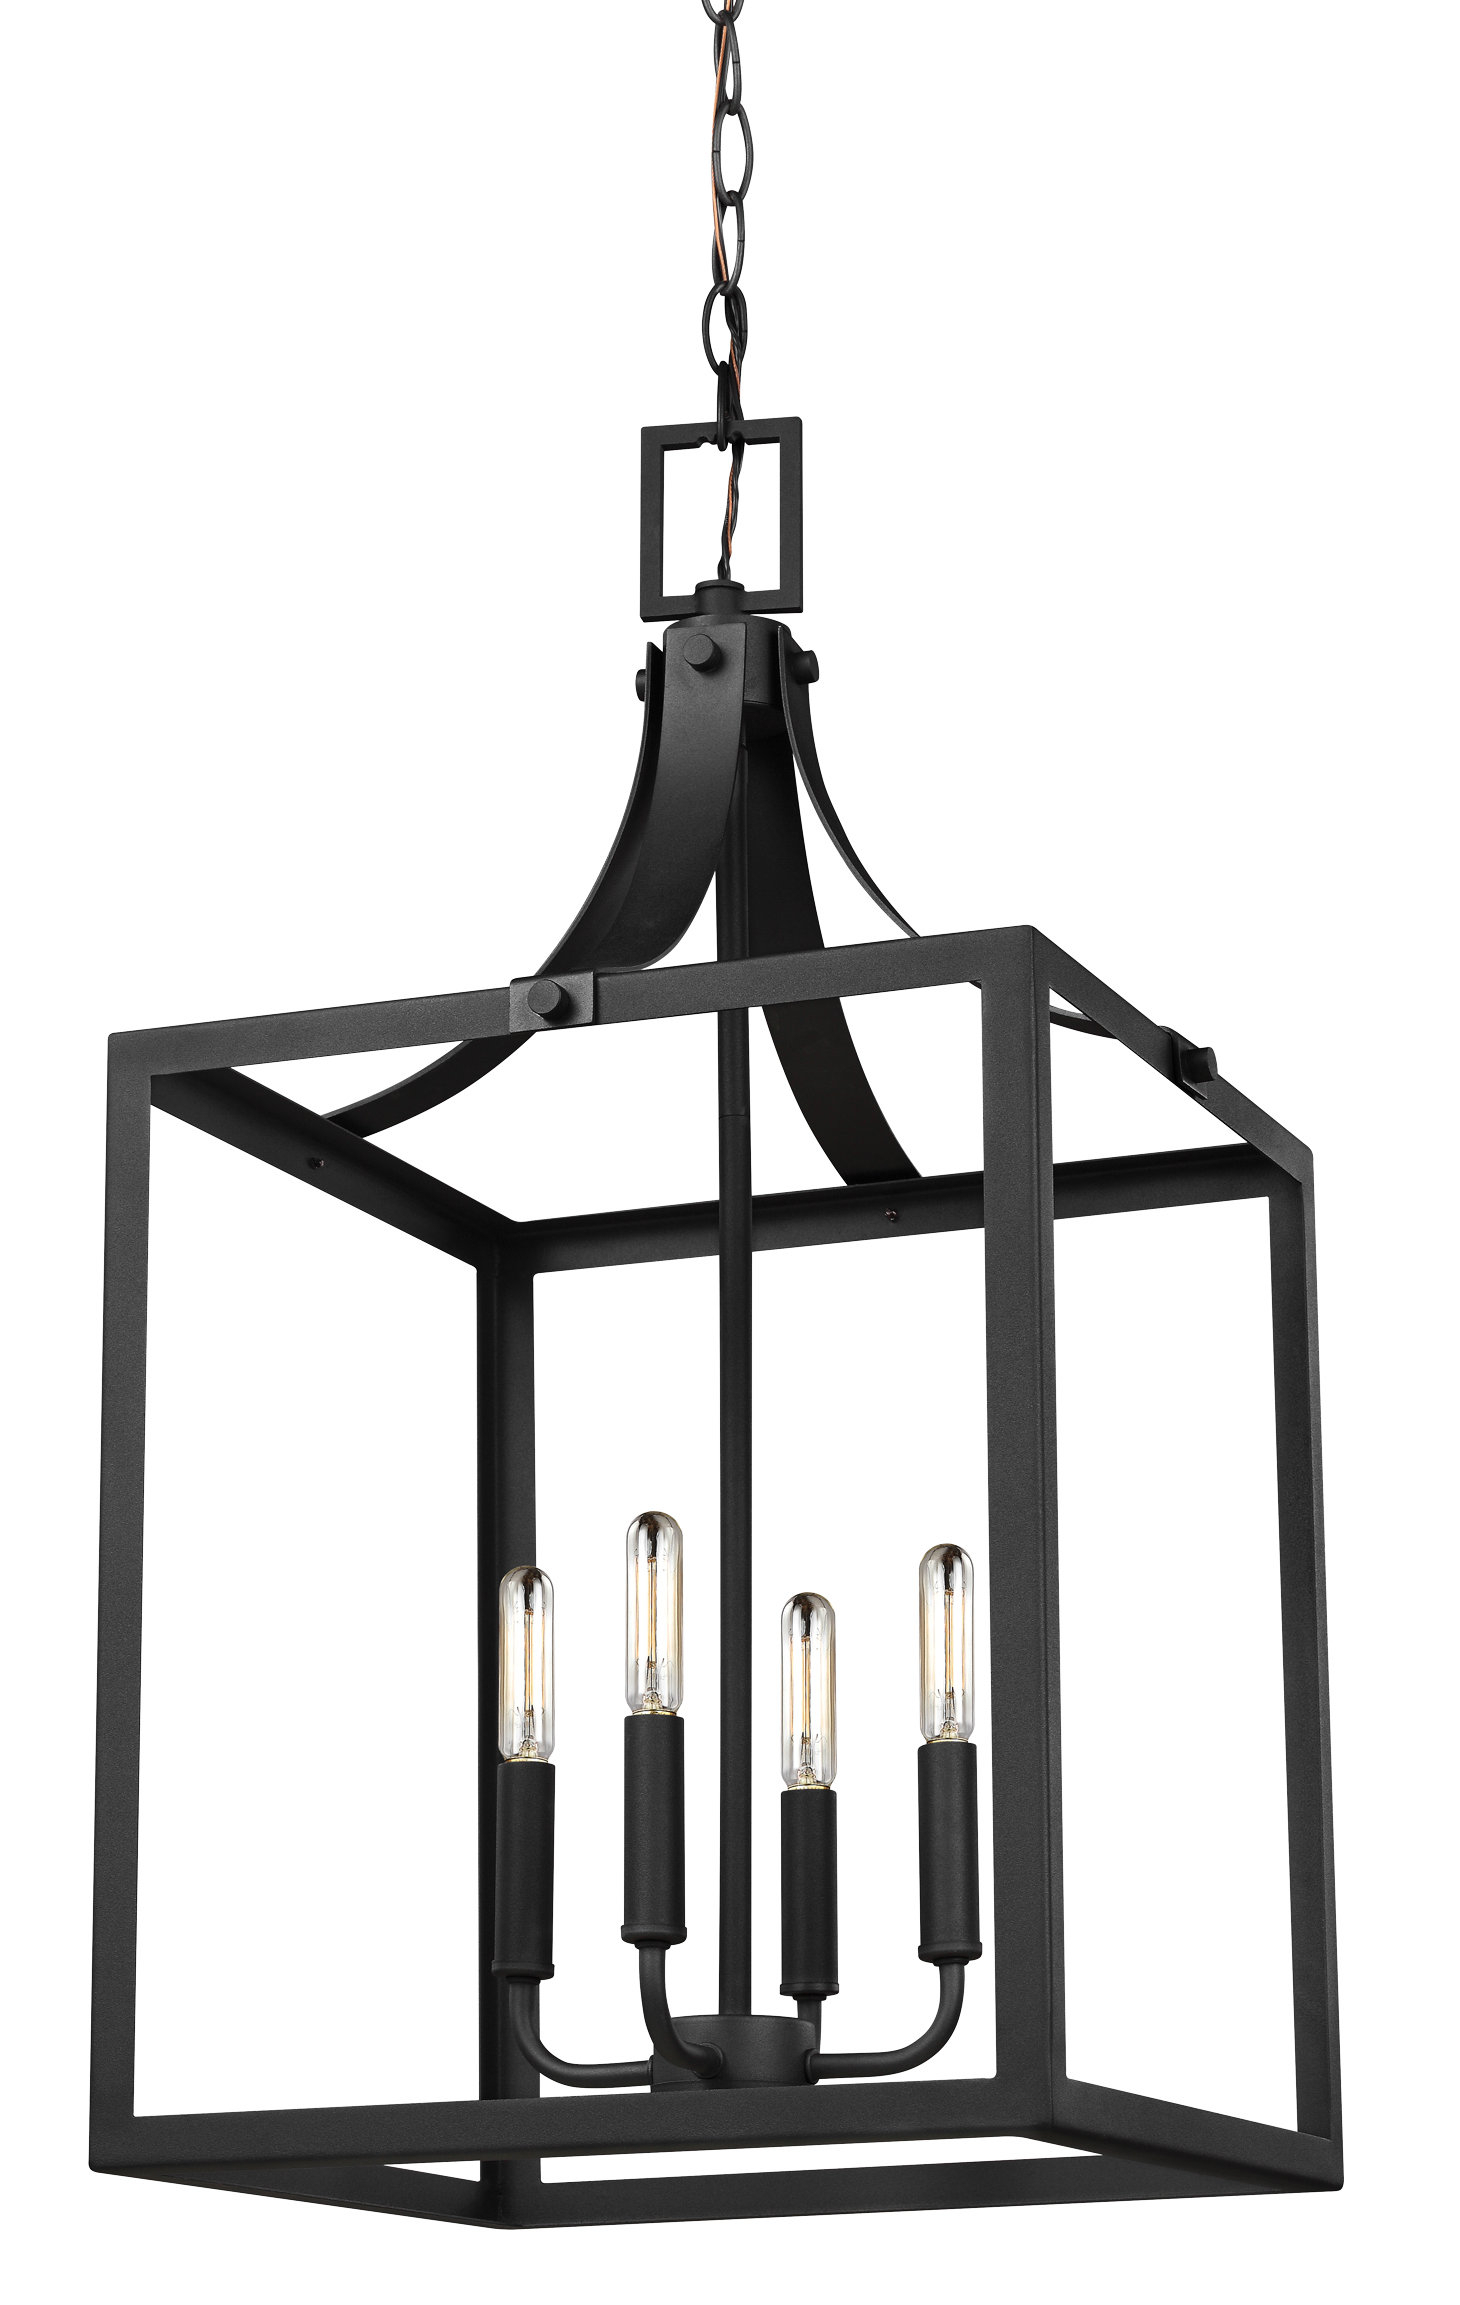 Gracie Oaks Sherri Ann 4 Light Lantern Square / Rectangle Pendant With Regard To Odie 8 Light Lantern Square / Rectangle Pendants (View 11 of 30)